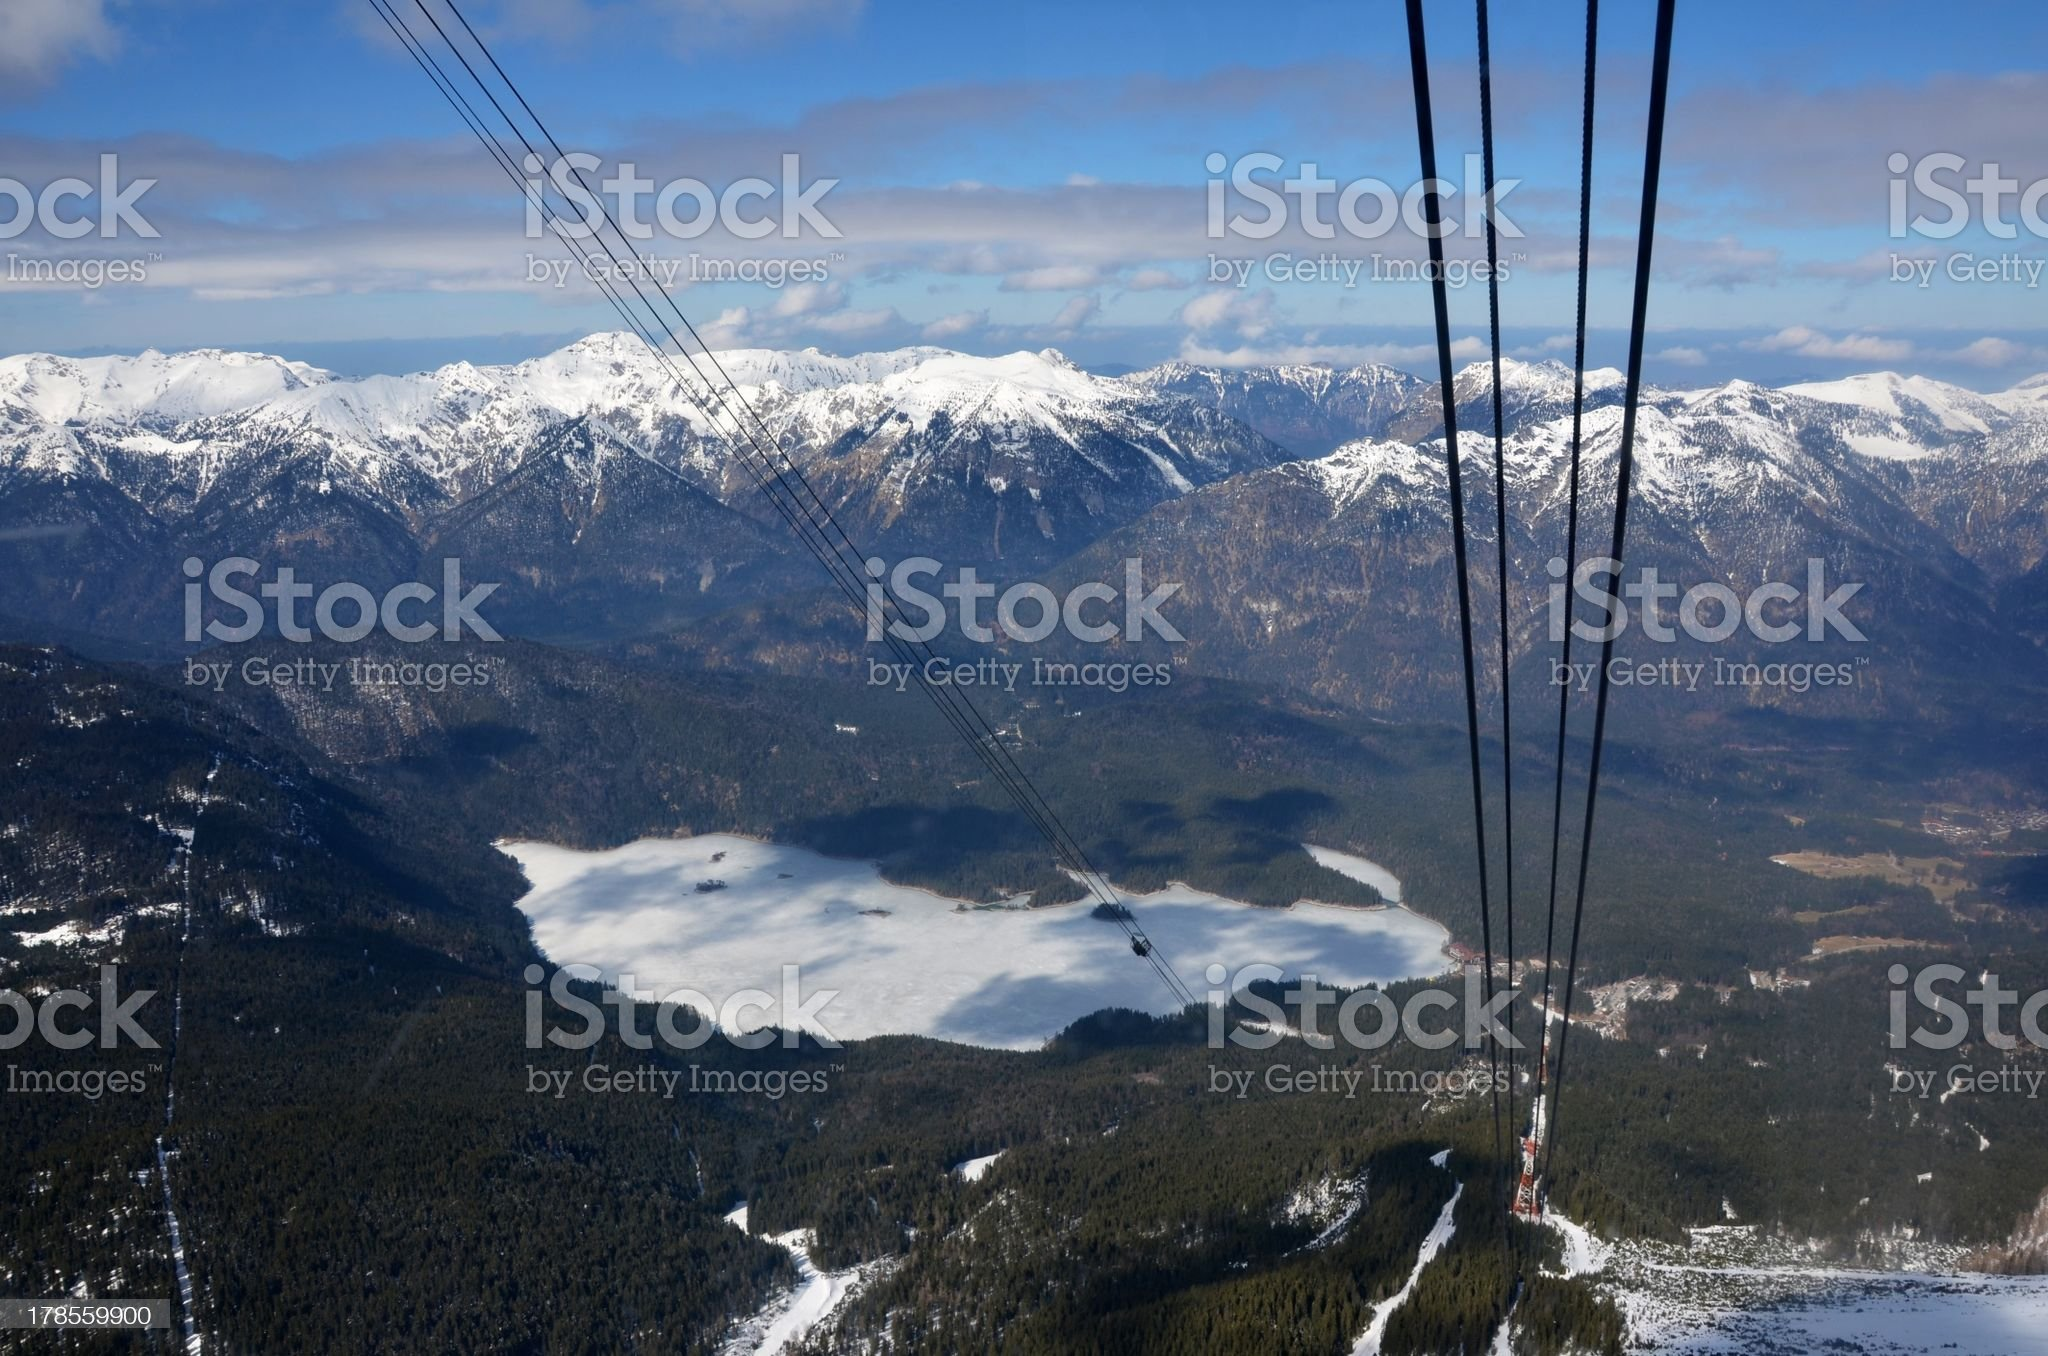 Frozen Lake and Snow-Capped Mountains in the Alps royalty-free stock photo